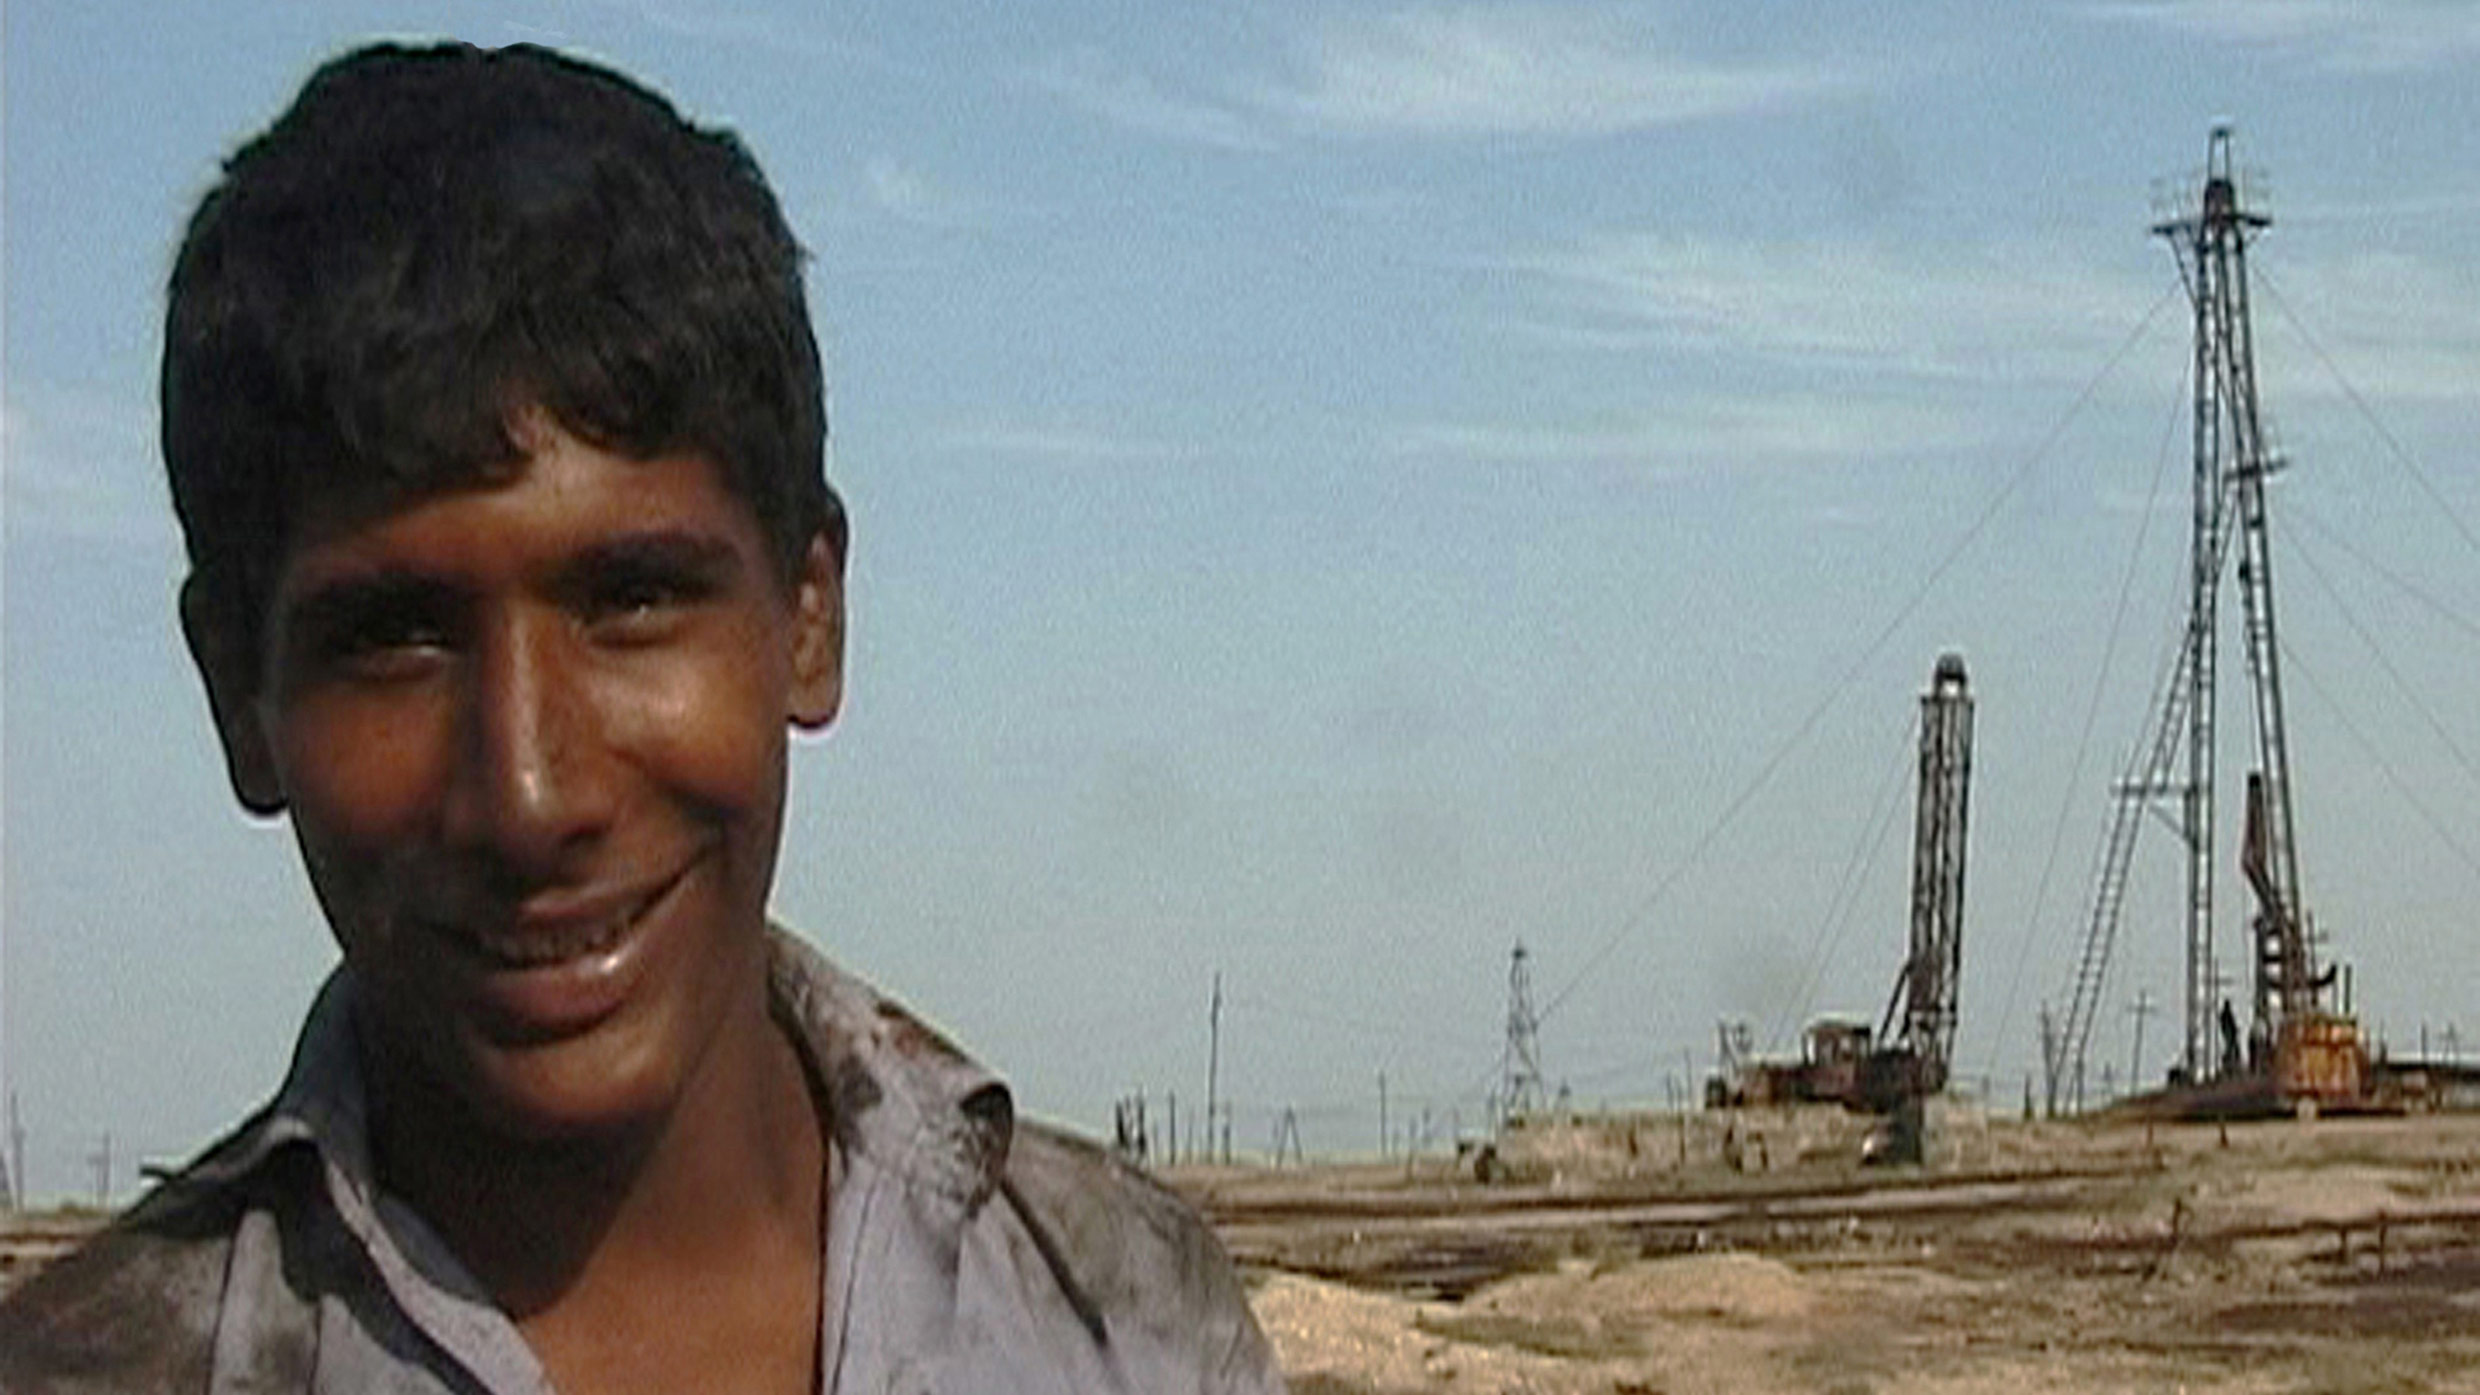 Image of a boy in front of an oil well, a still from Ursula Biemann's Black Sea Files